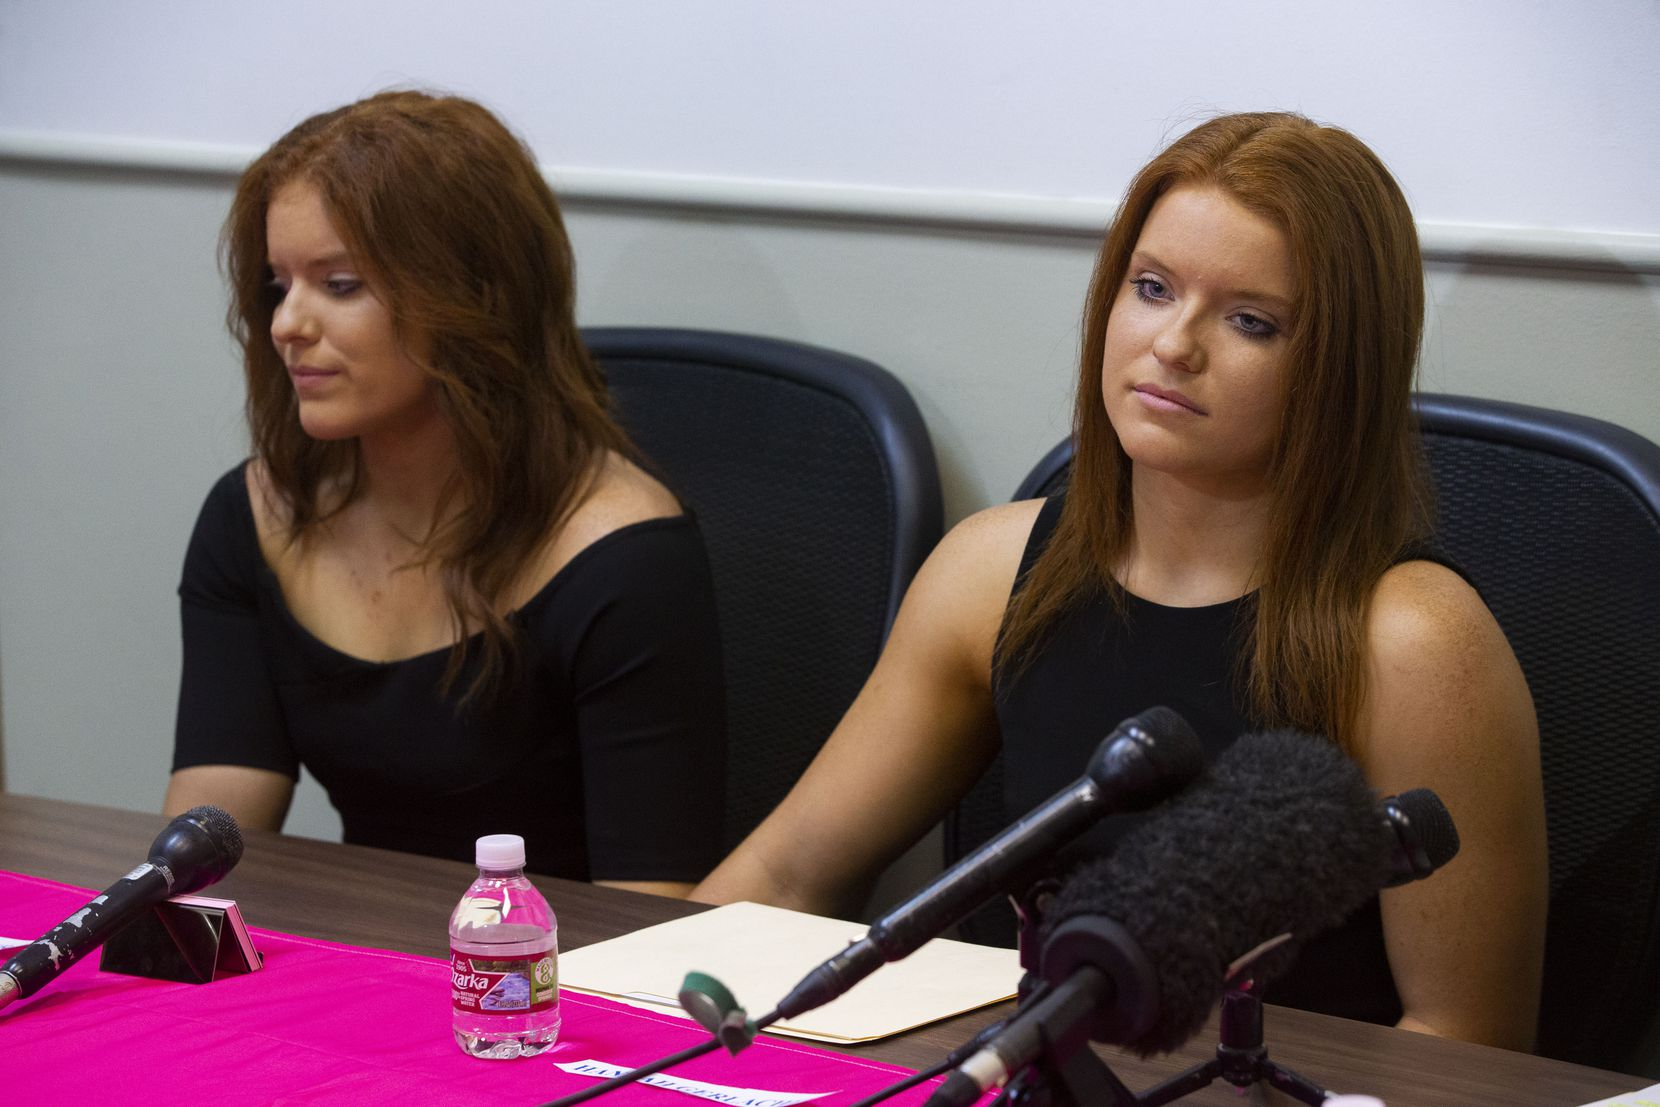 """Sisters Jessica, left, and Hannah Gerlacher listen during a Monday morning news conference. Hannah Gerlacher said, """"We love the children that we coach more than anything, and we wouldn't want anything like this to happen to them."""""""